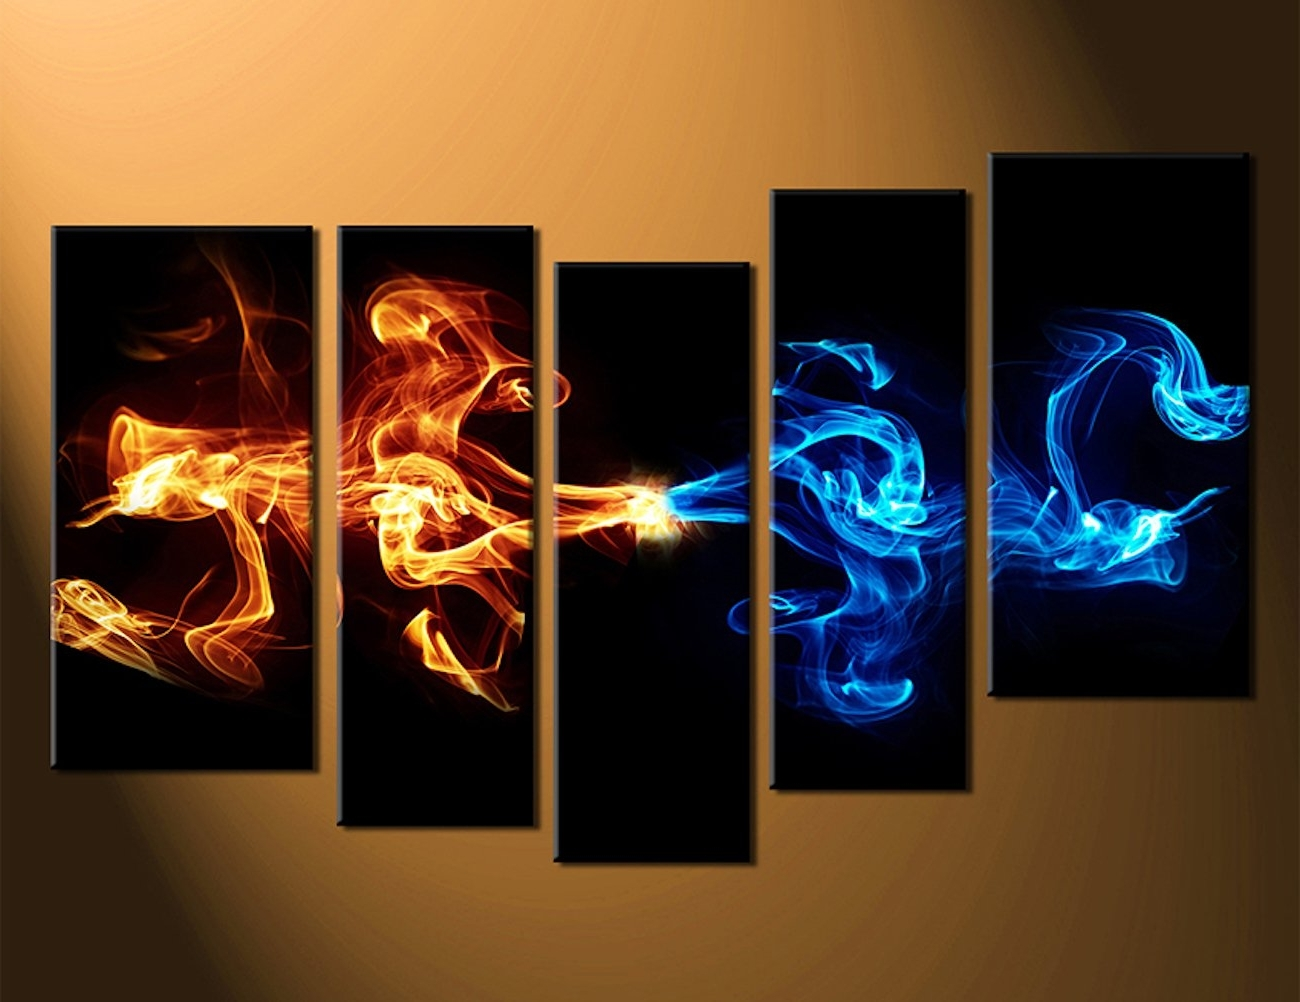 Most Current Abstract 5 Piece Smoke Canvas Wall Art » Gadget Flow Throughout Wall Art Canvas (View 7 of 15)